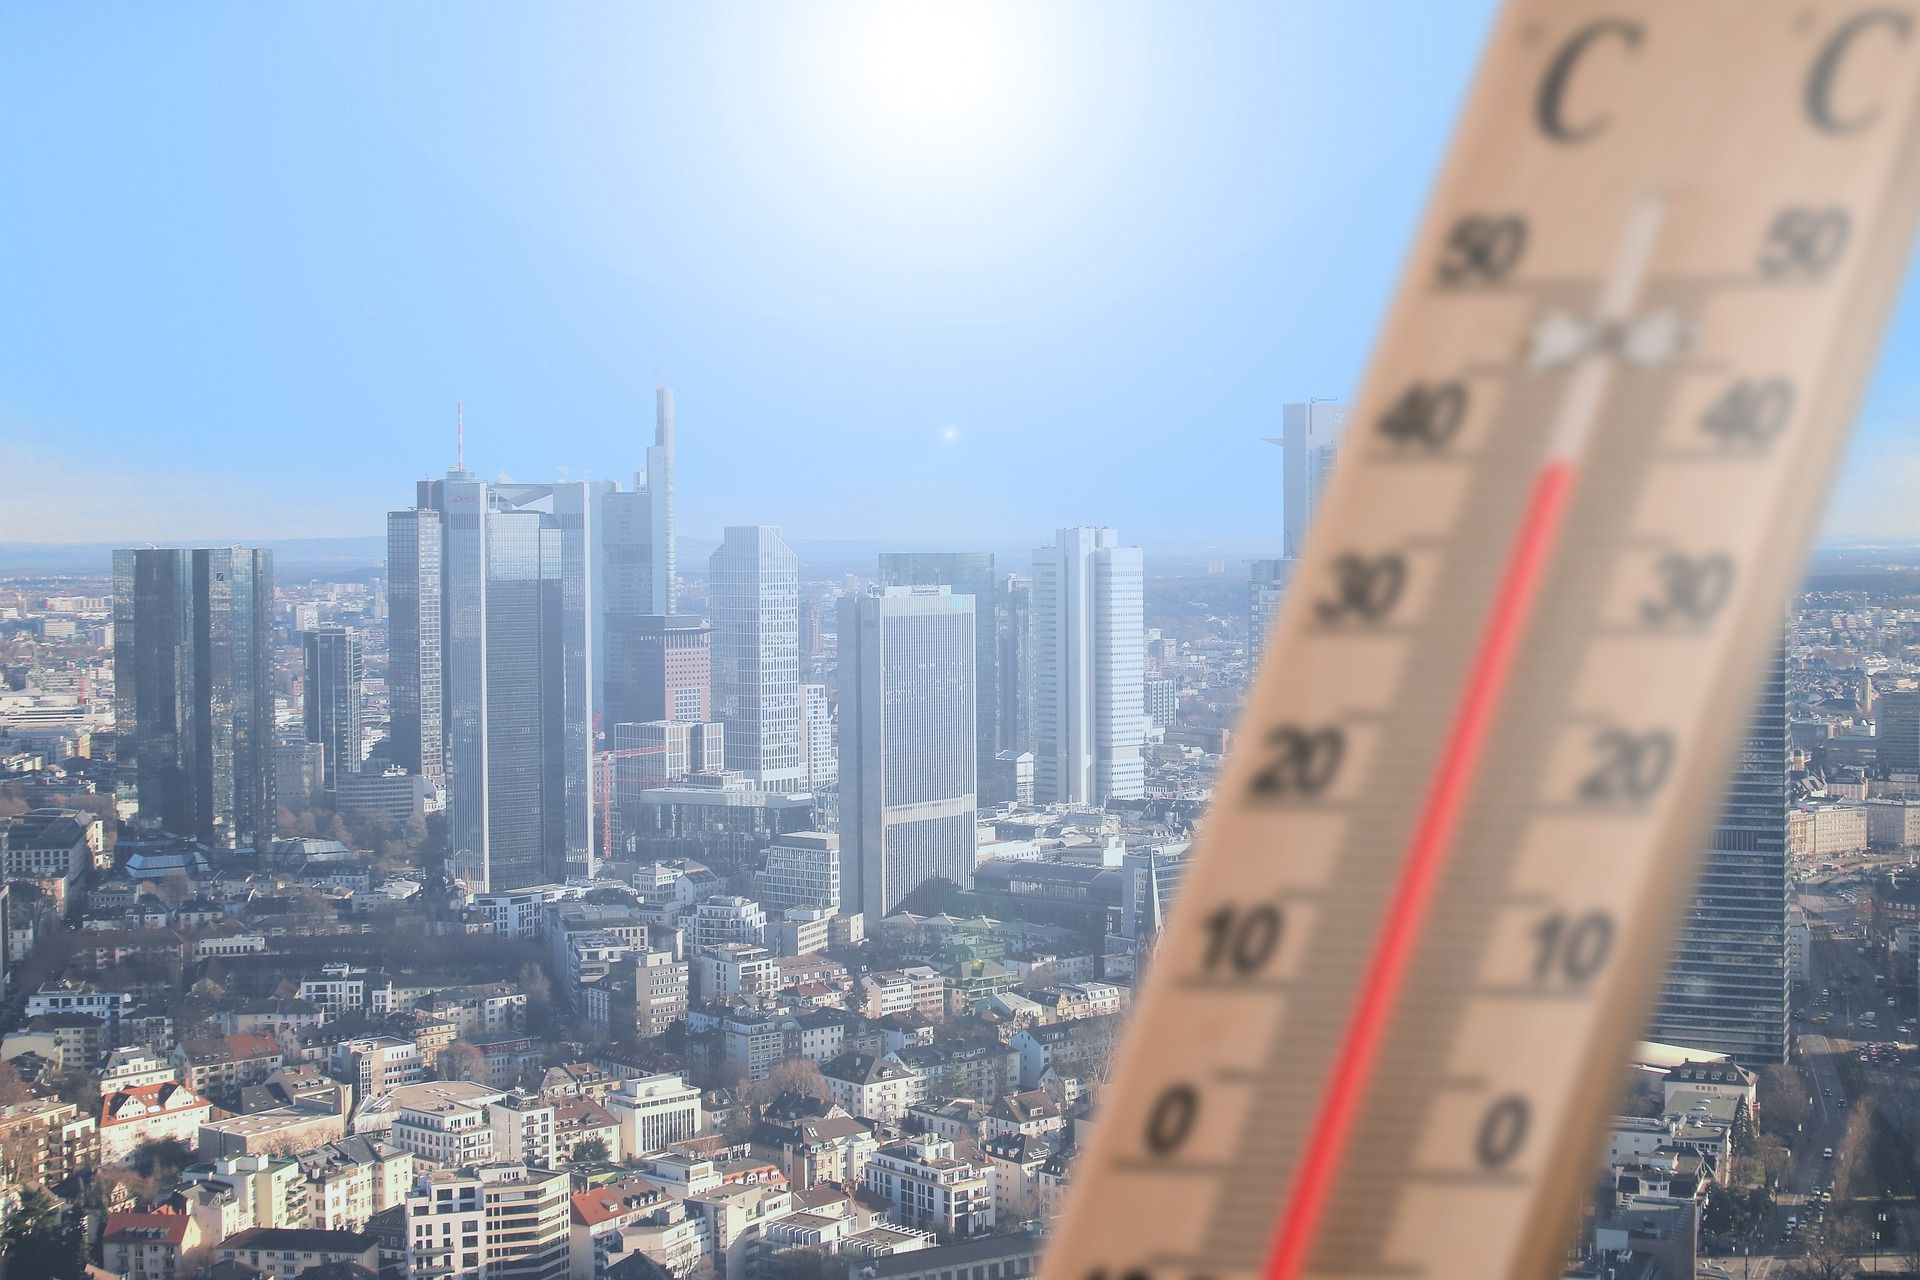 Urban heat islands and green solutions